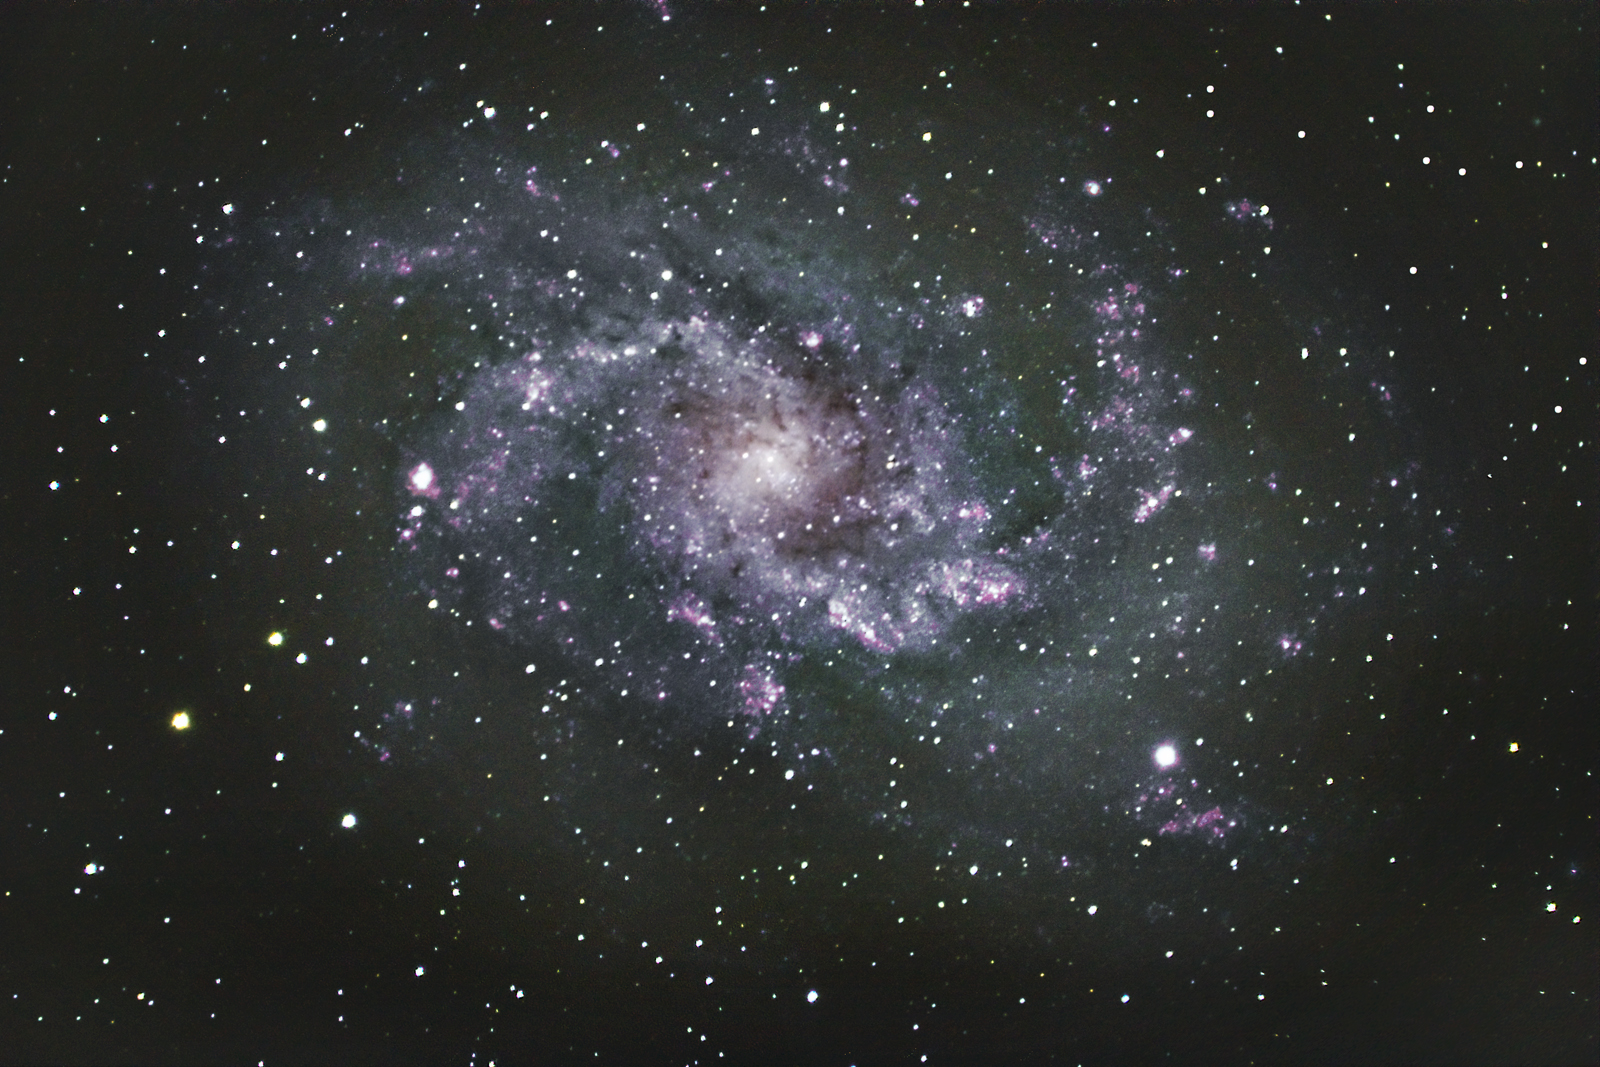 M 33 FROM THE 101 KILOMETER